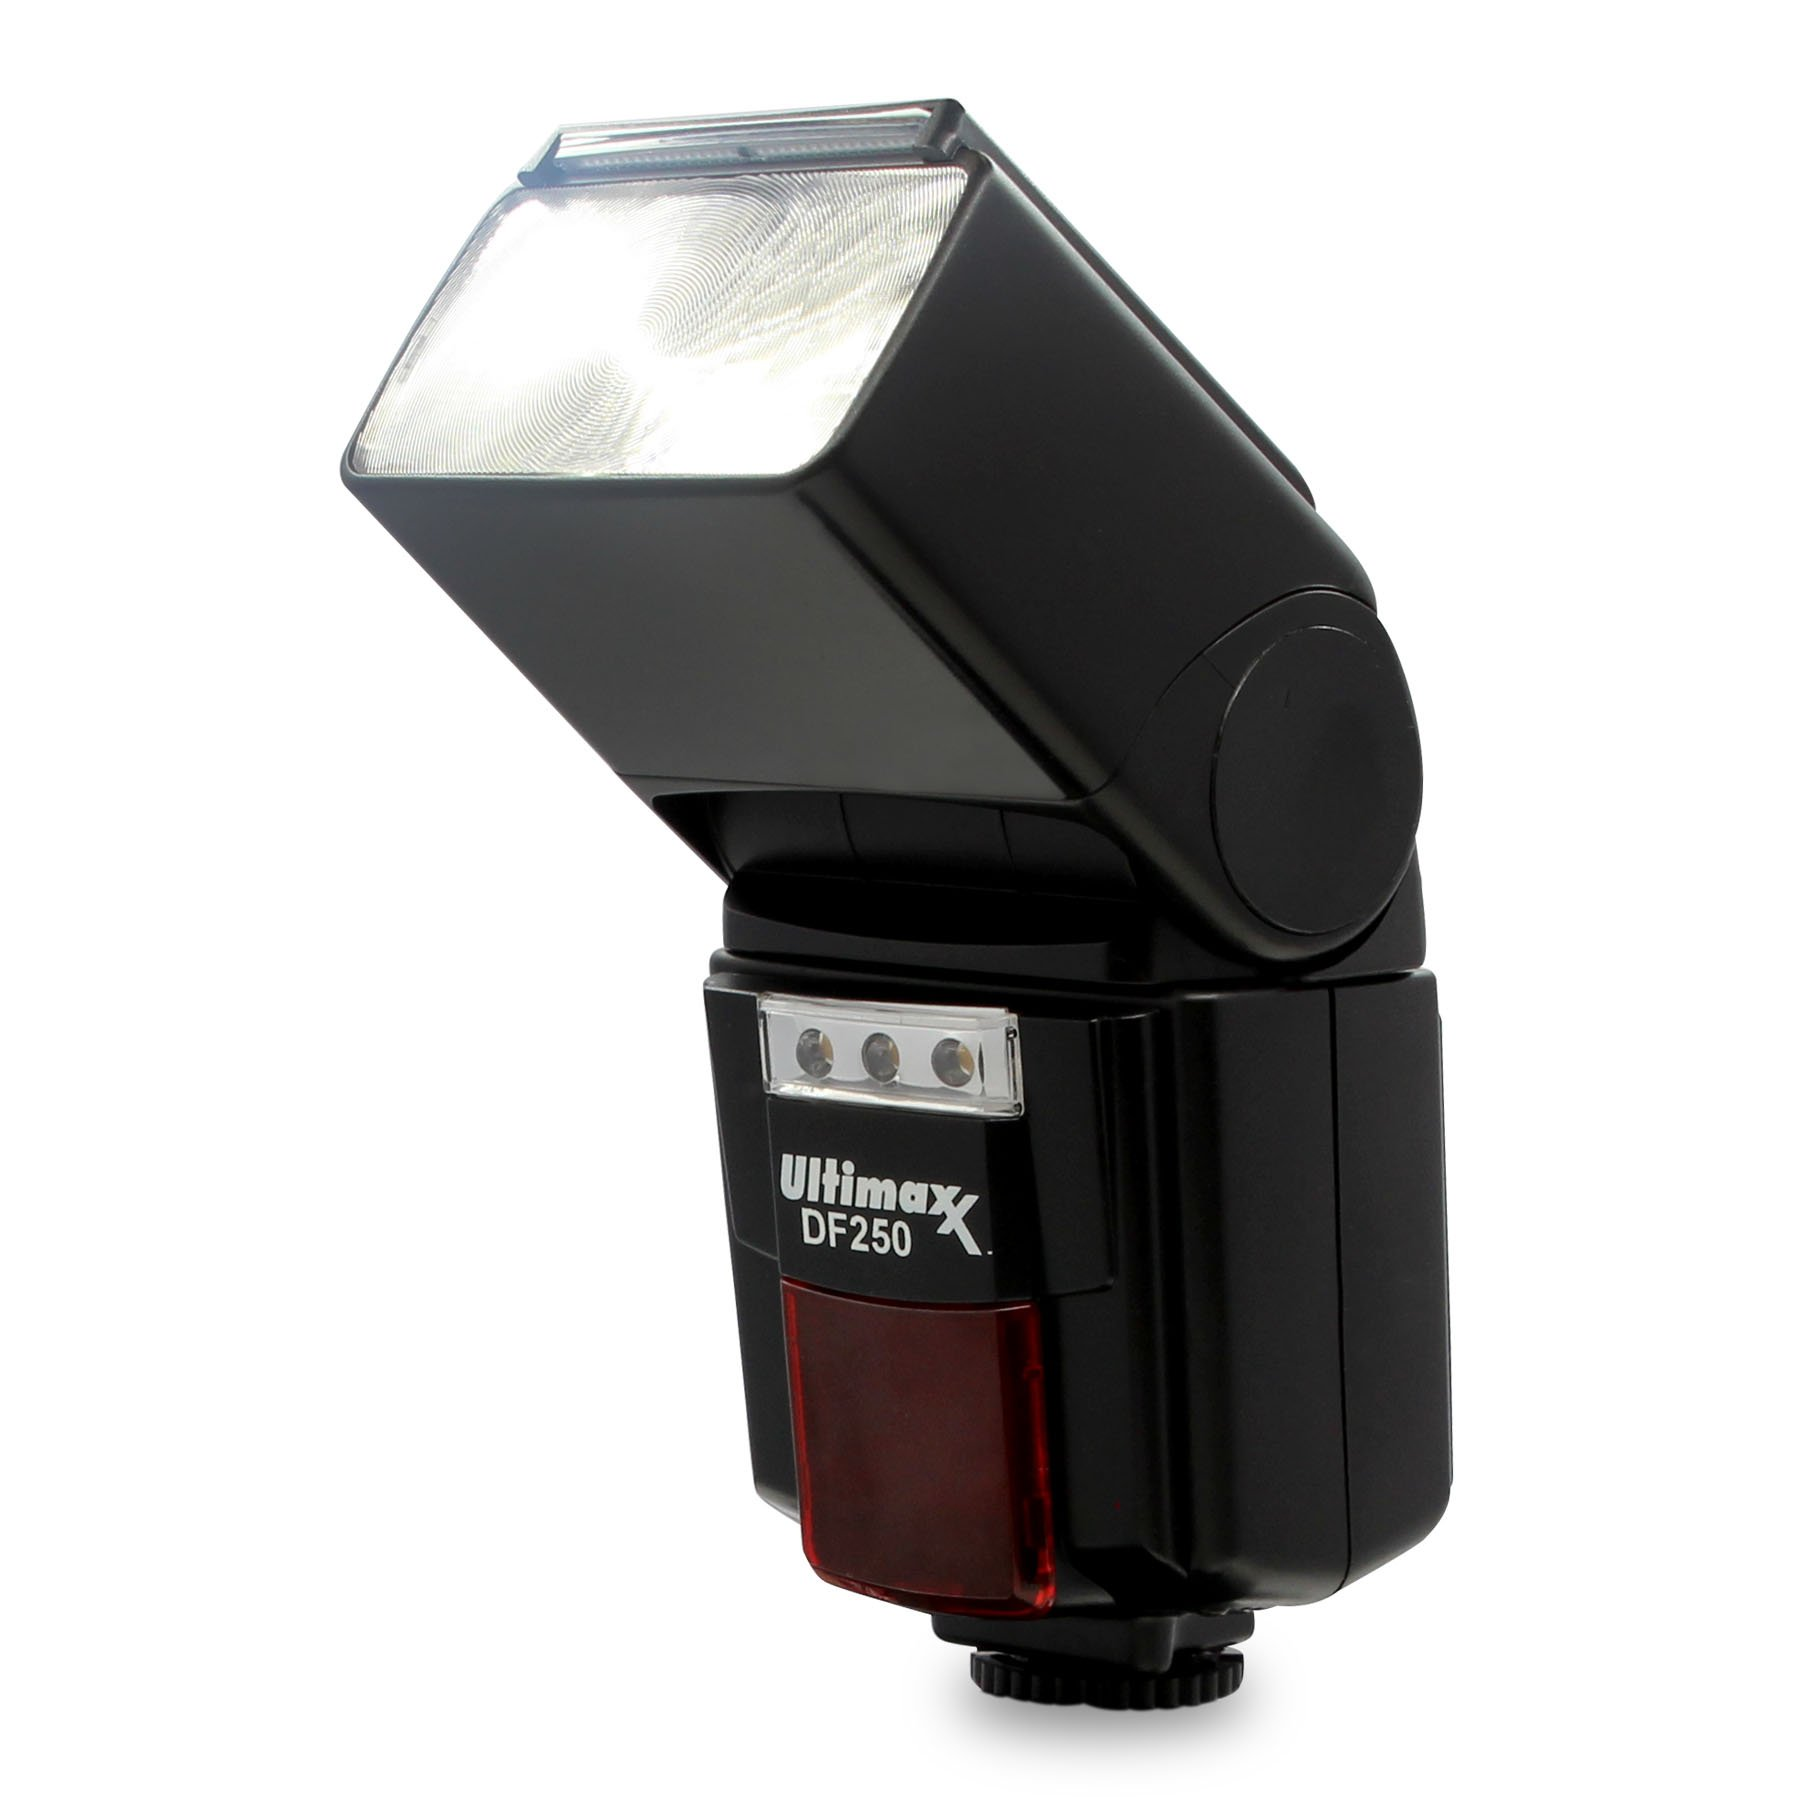 Ultimaxx High Power Automatic Flash with LED Video Light for Canon Nikon Panasonic Olympus Pentax and Other DSLR Camera-Digital Cameras with Standard Hot Shoe